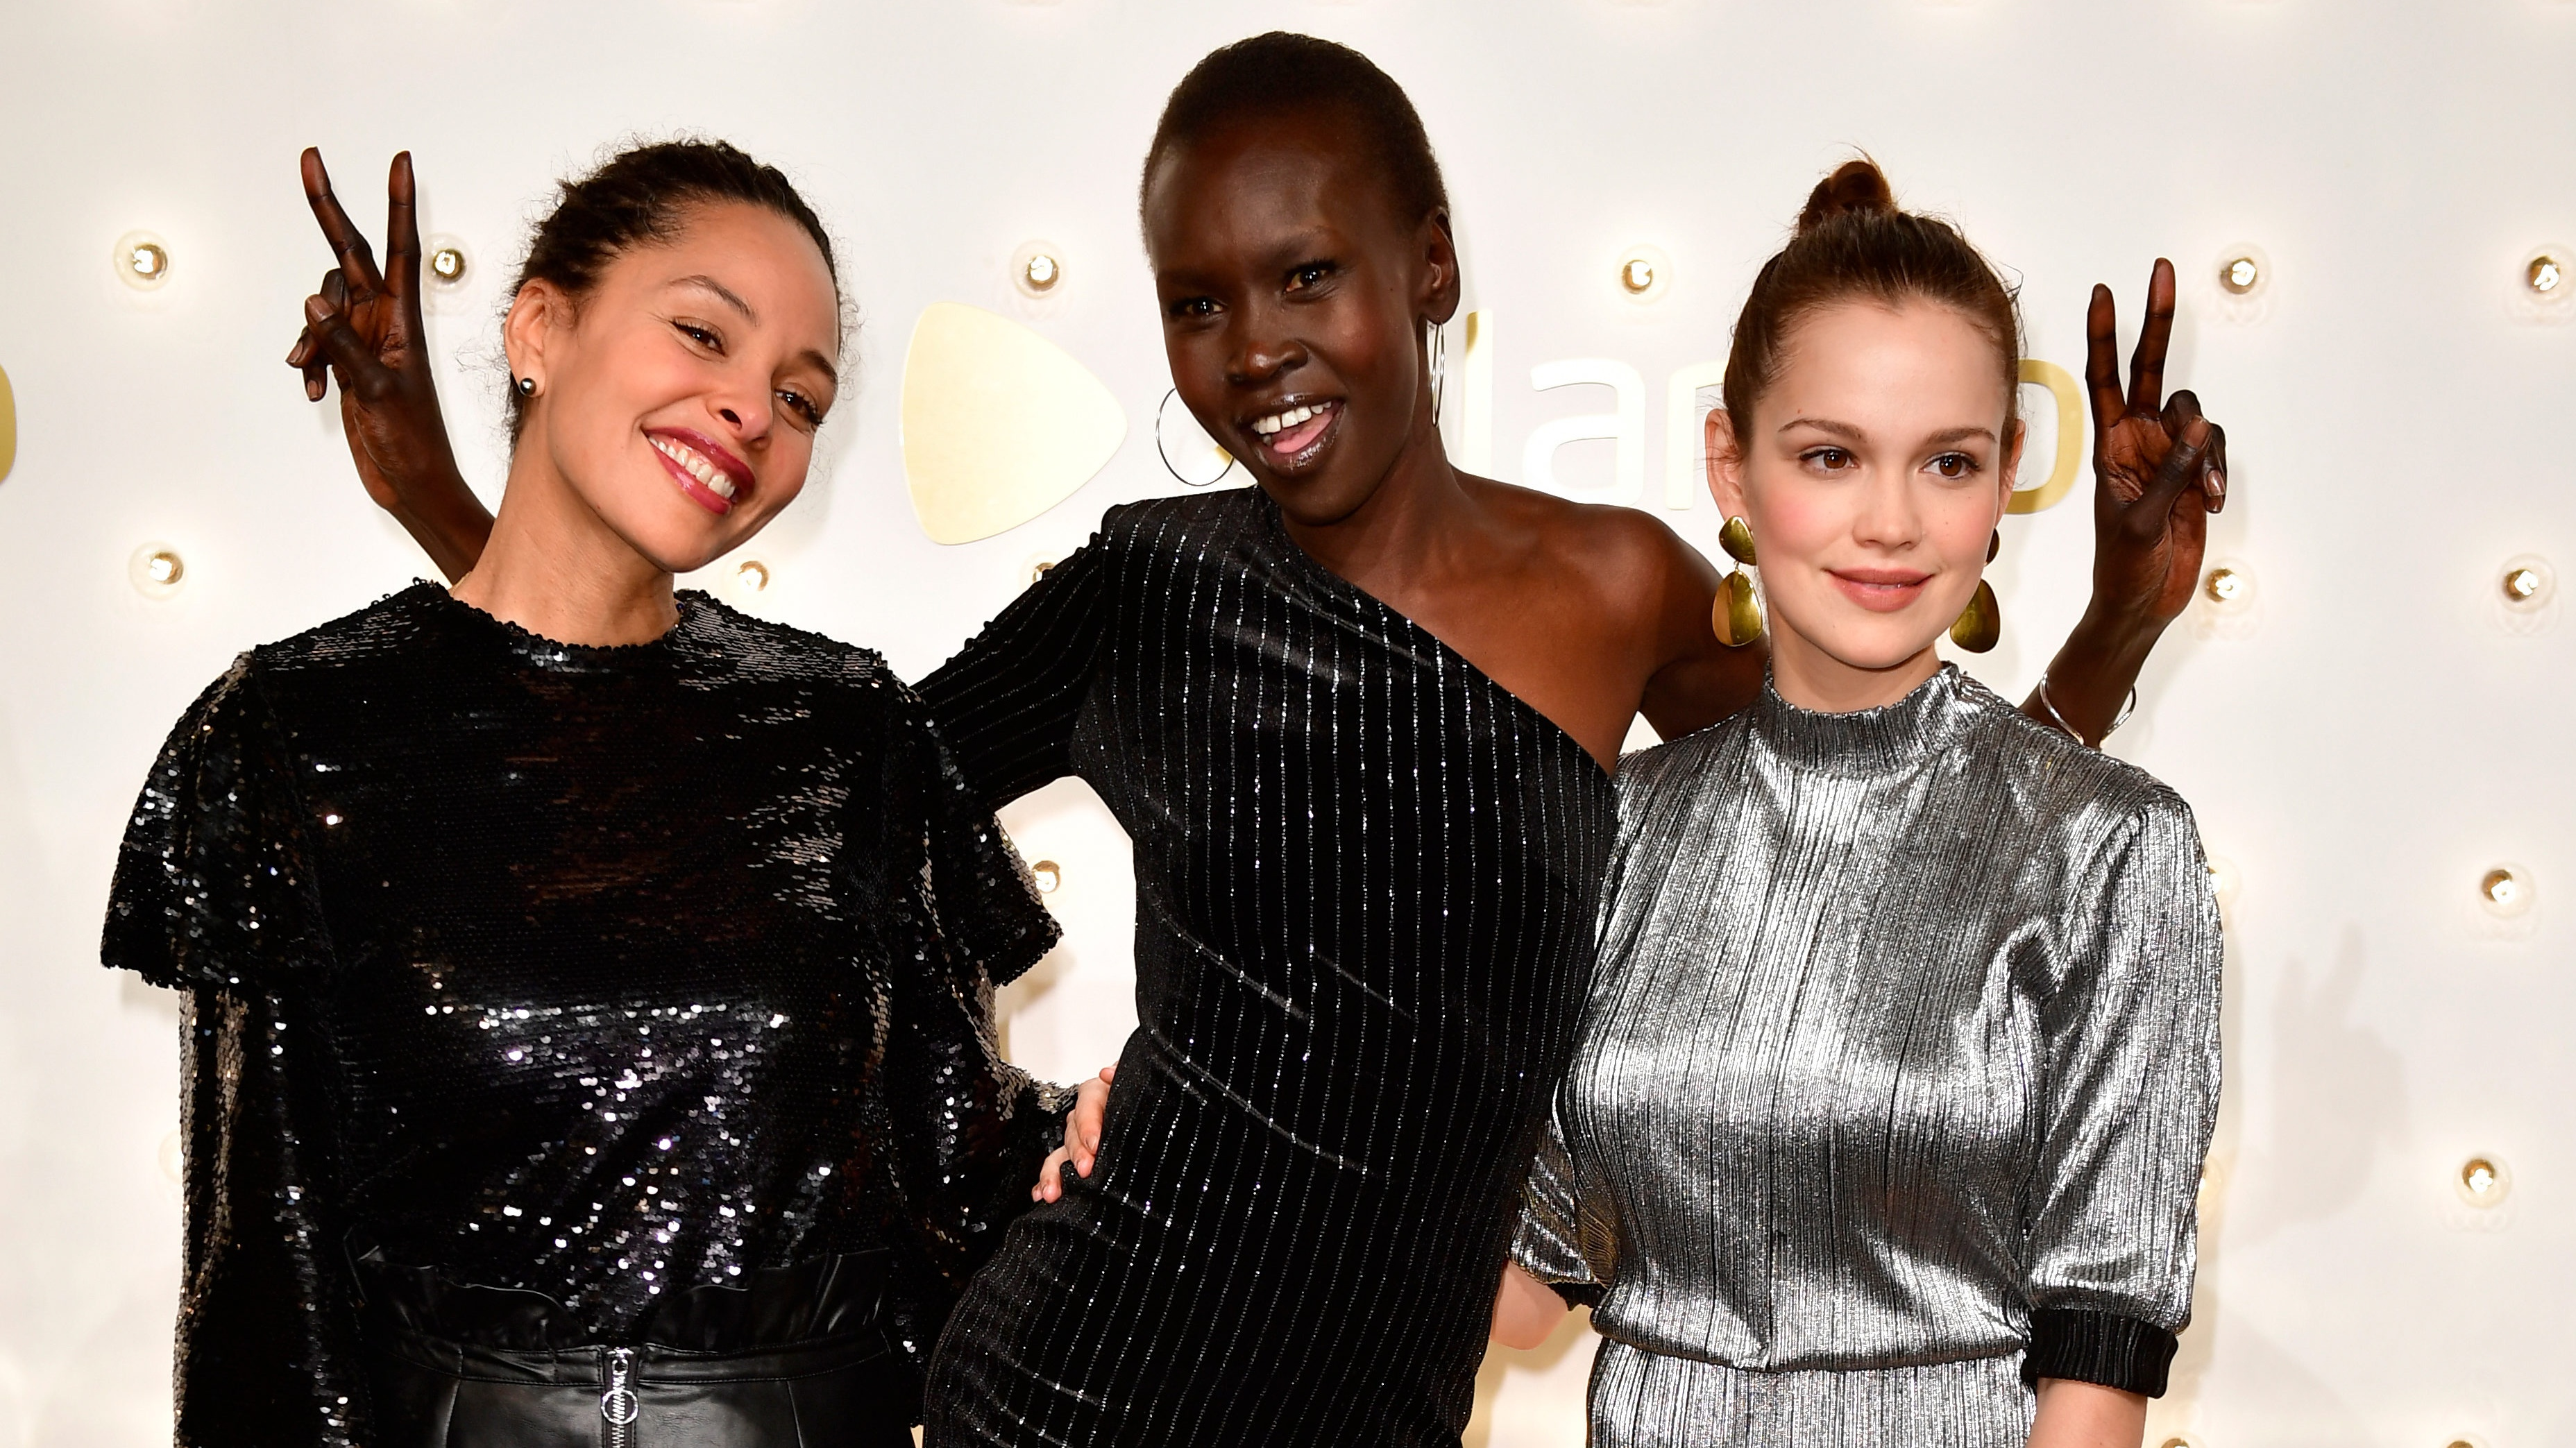 BERLIN, GERMANY - DECEMBER 13: (L-R) Joy Denalane, Alek Wek and Emilia Schuele attend the Zalando xmas bash hosted by Alek Wek at Haus Ungarn on December 13, 2017 in Berlin, Germany. (Photo by Alexander Koerner/Getty Images for Zalando)